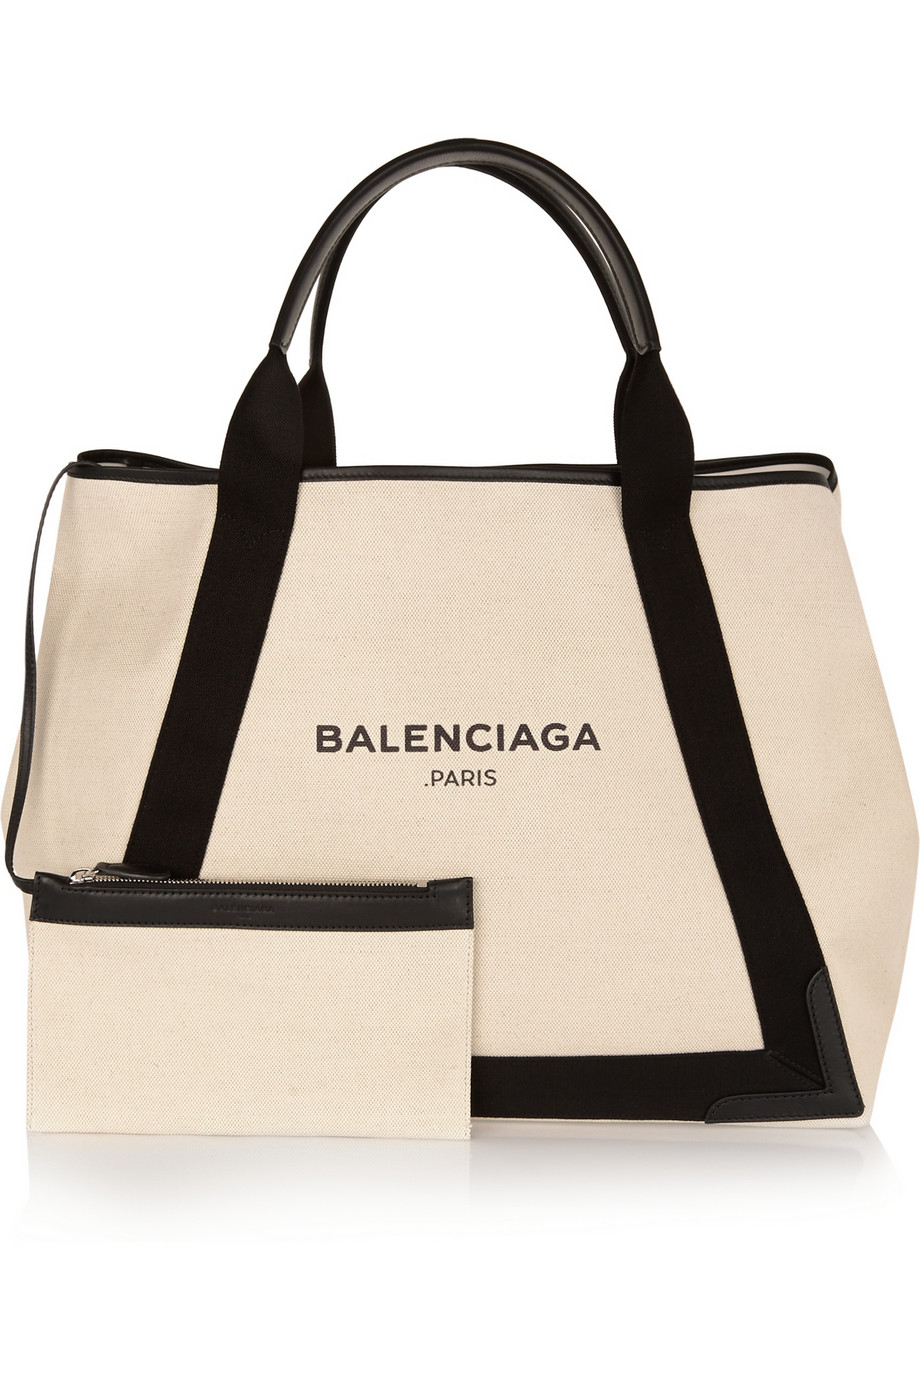 5e94ecd75ff2 Lyst - Balenciaga Cabas M Leather-Trimmed Canvas Tote in Natural